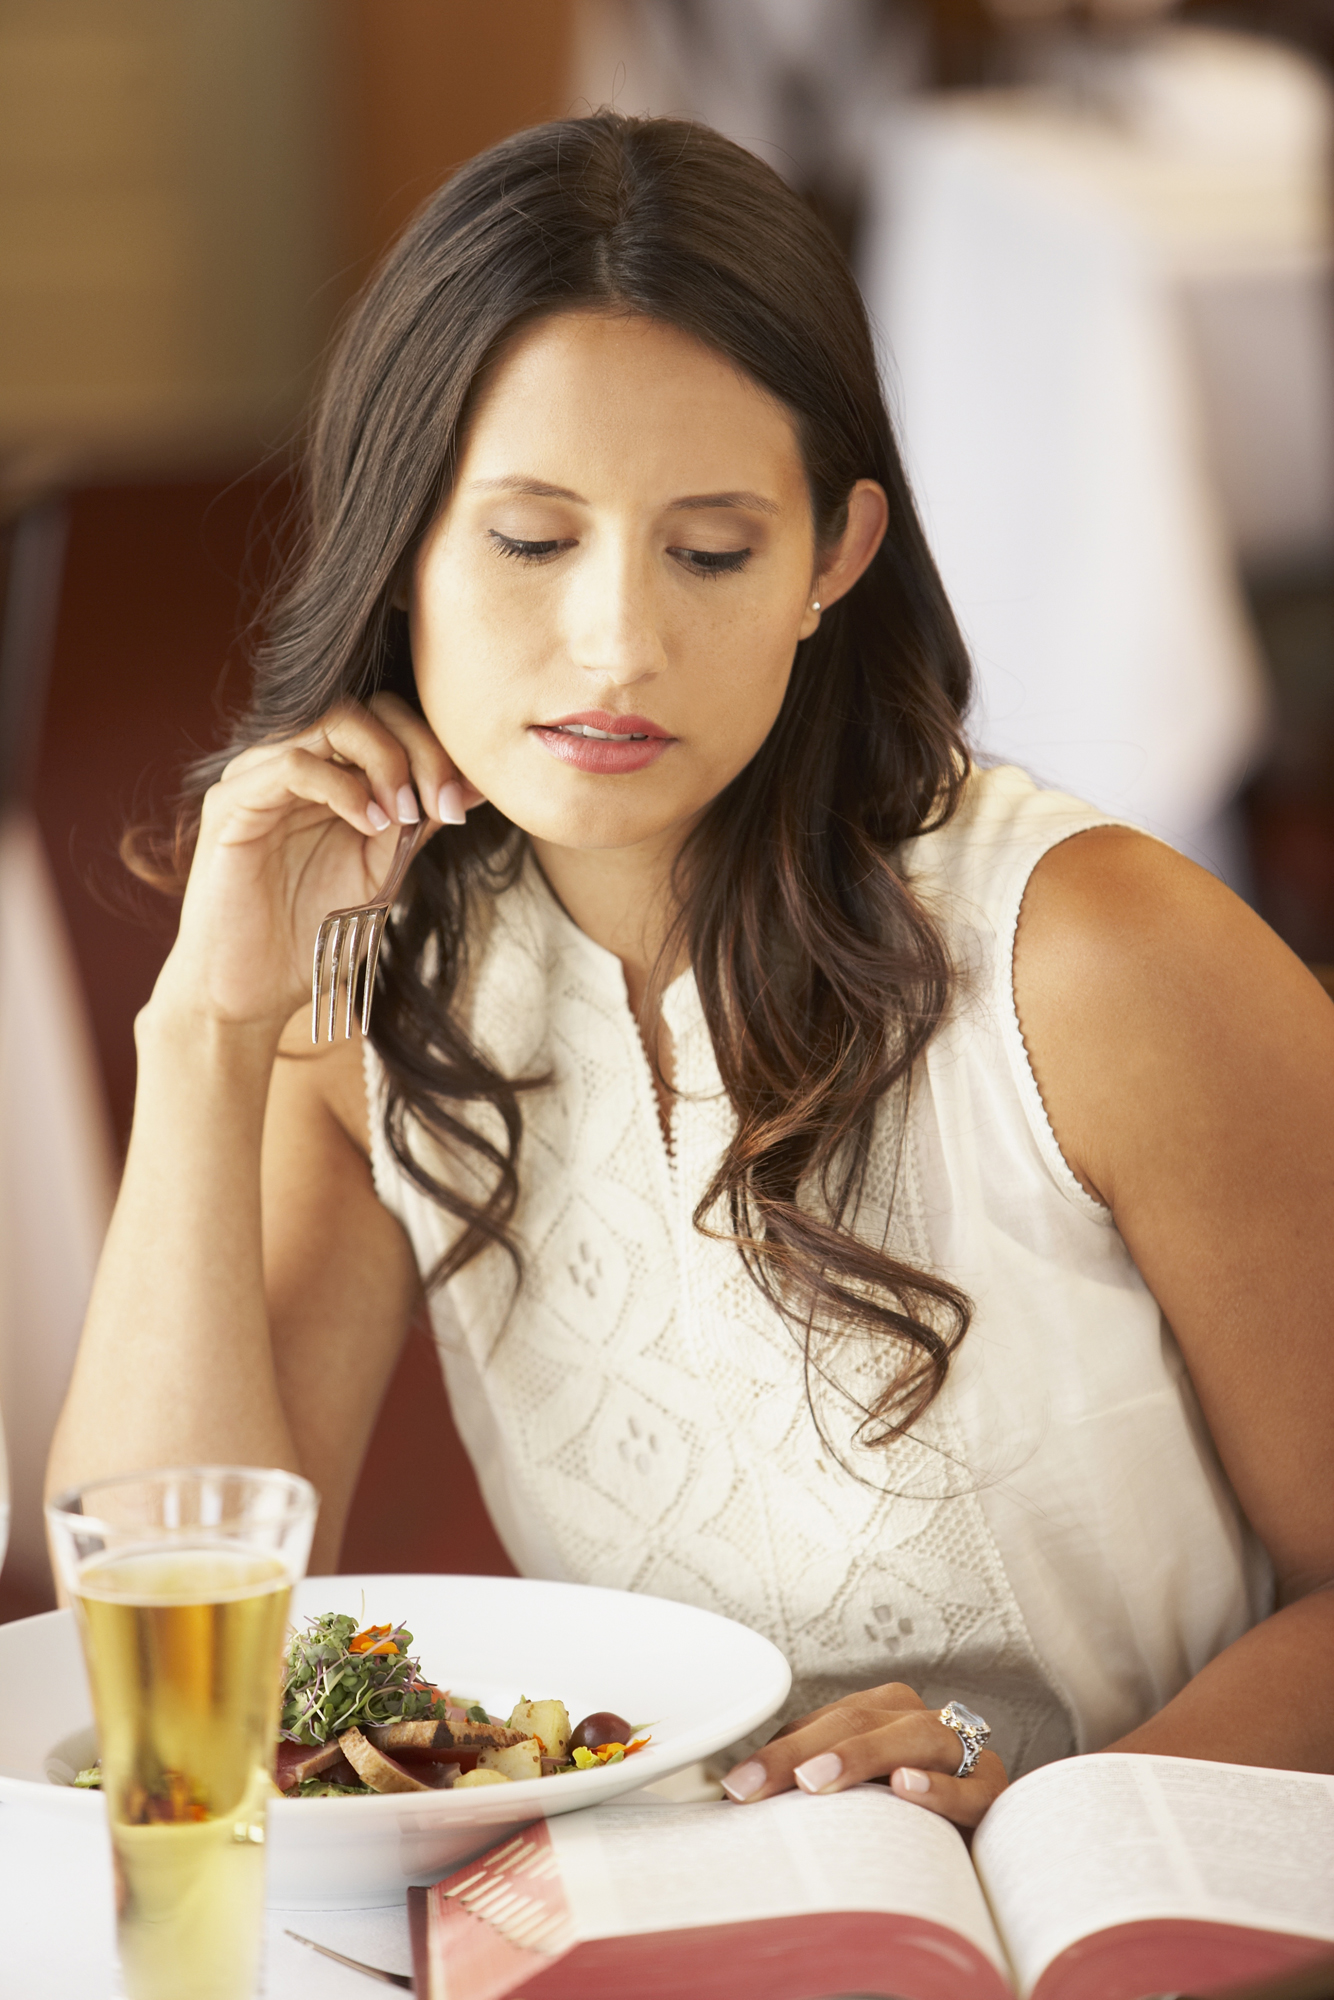 Woman at restaurant with book